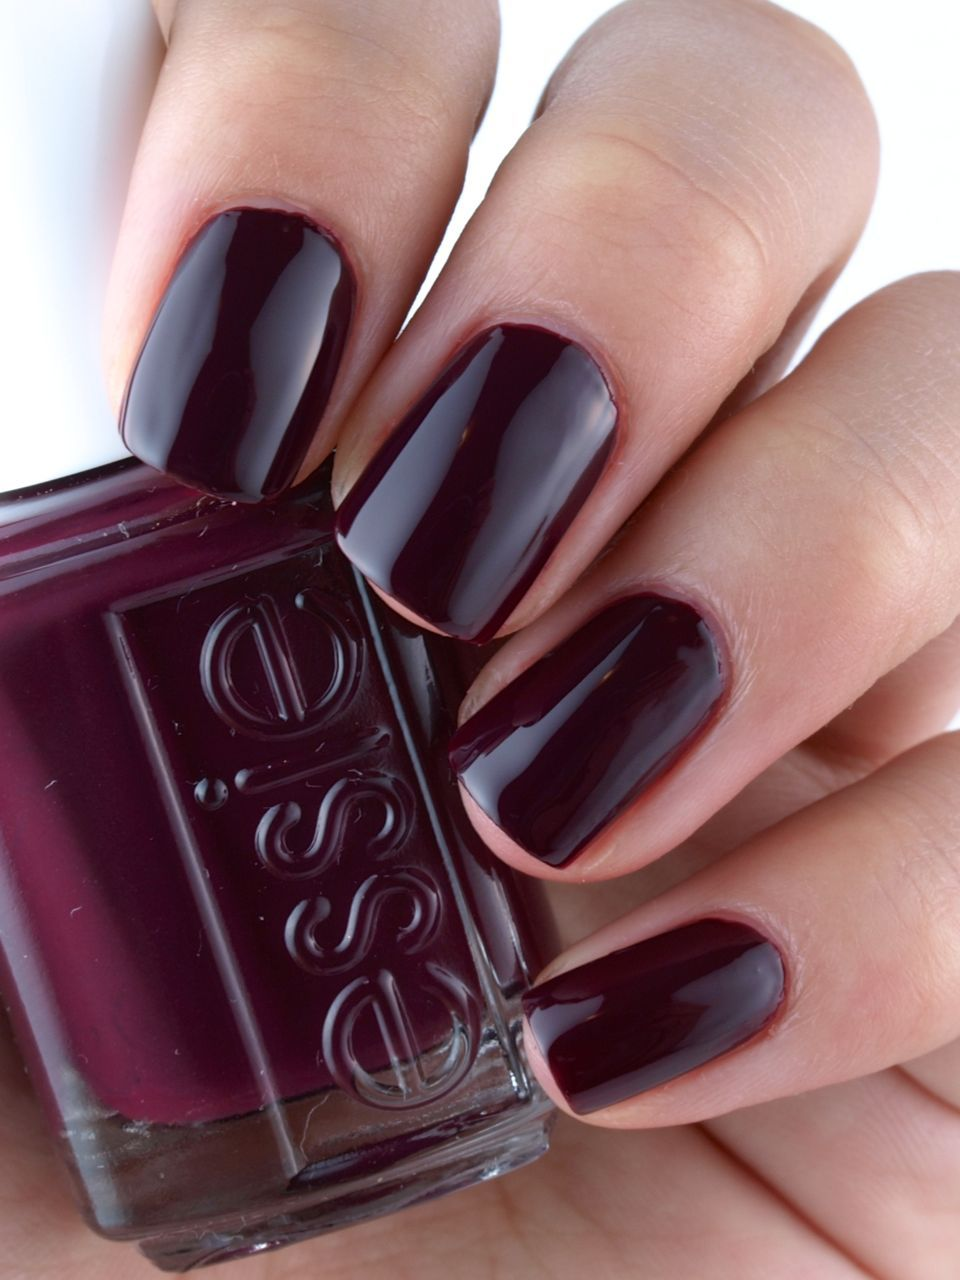 Essie Fall 2015 Collection: Review and Swatches | Sloth, Fall 2015 ...